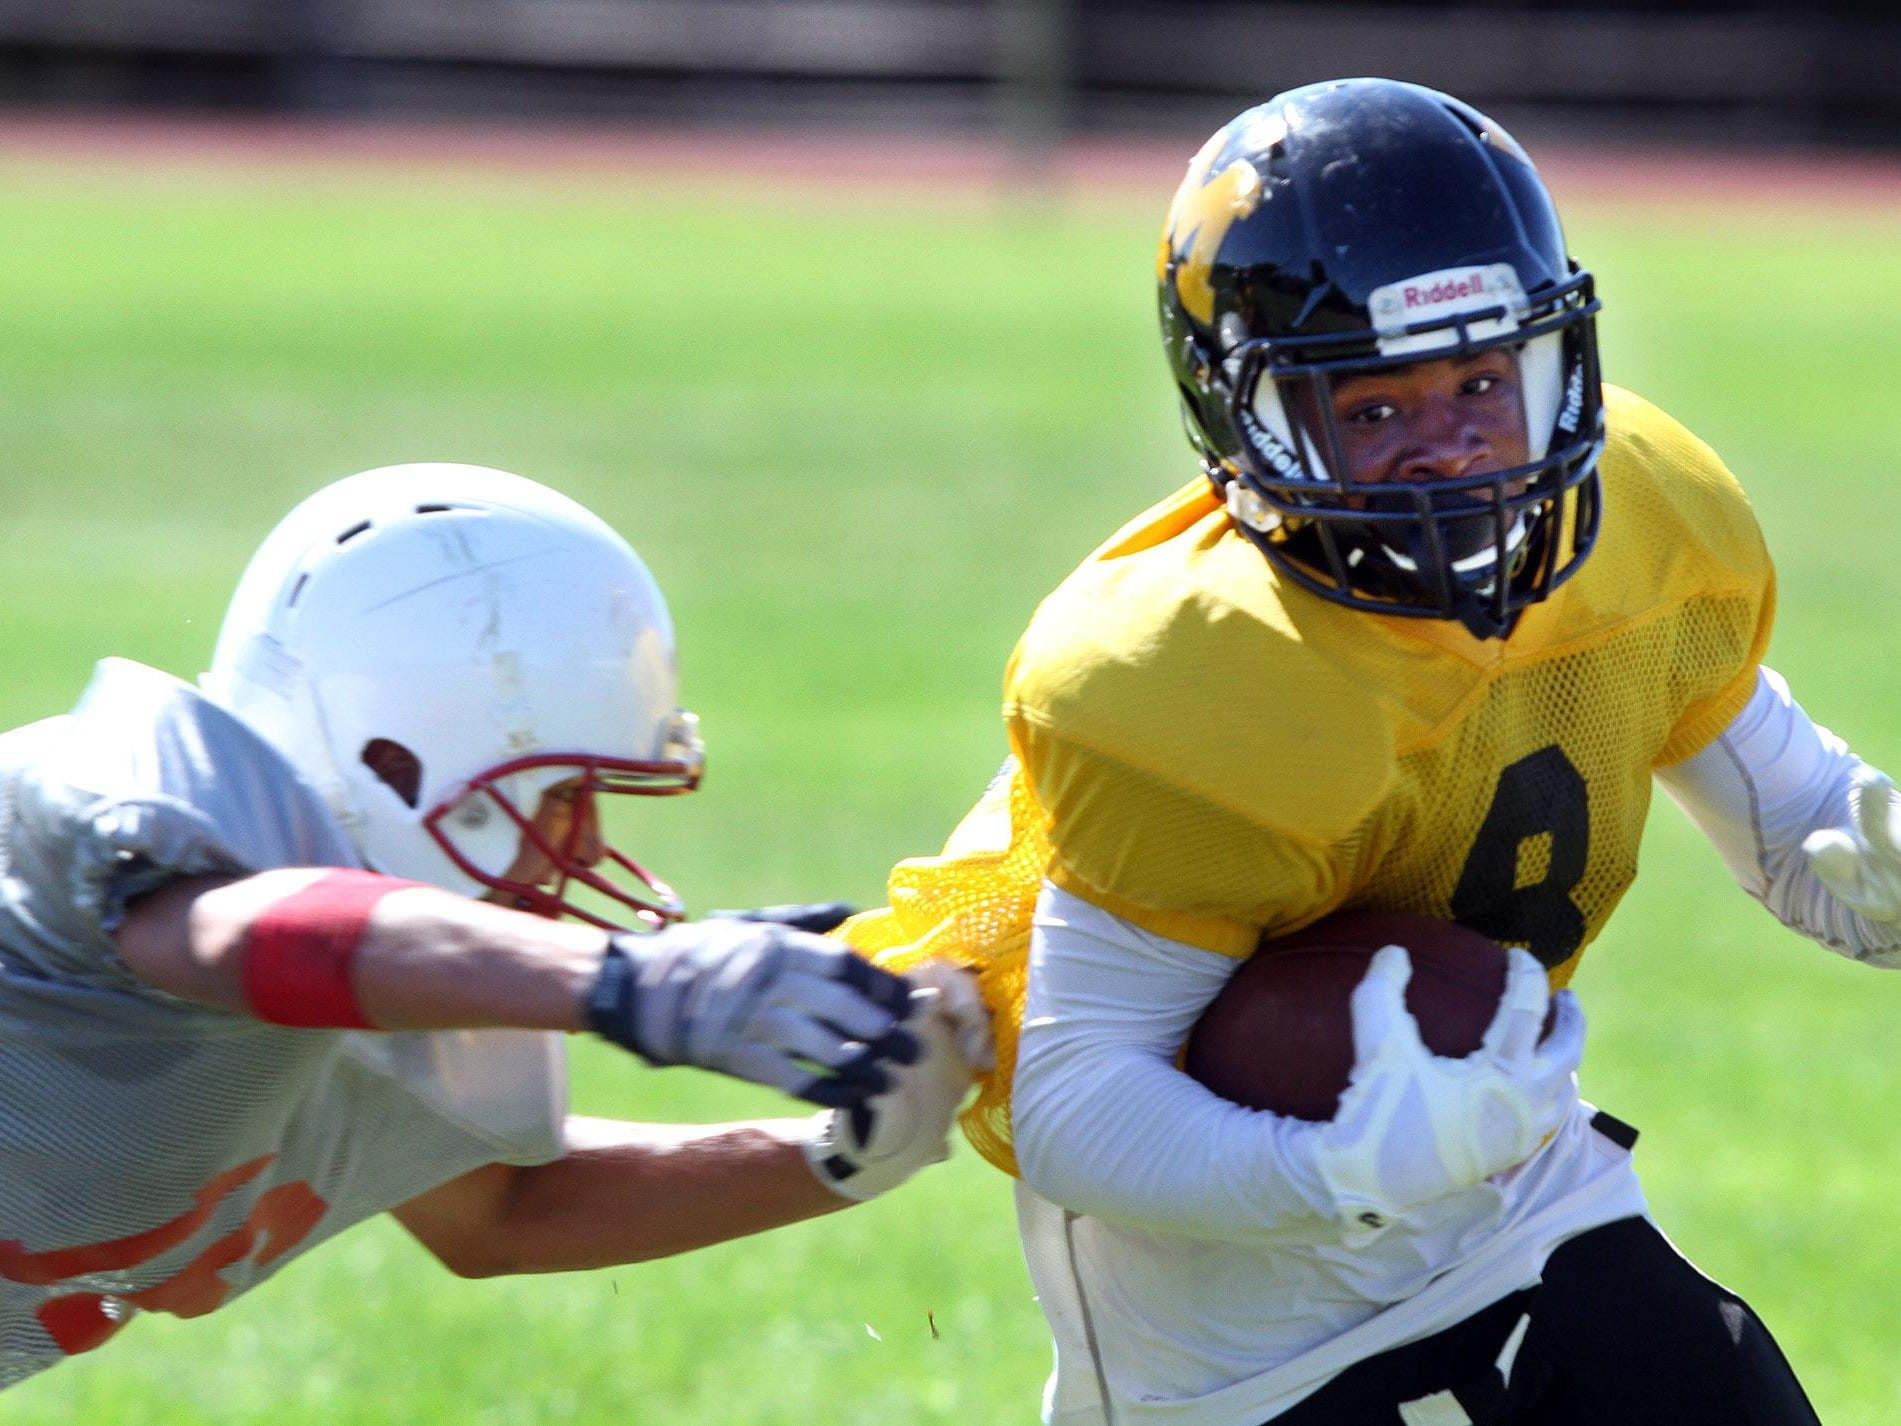 Monmouth's Malik Wiggins tries to escape a Jackson Liberty defender during a scrimmage Aug. 28.